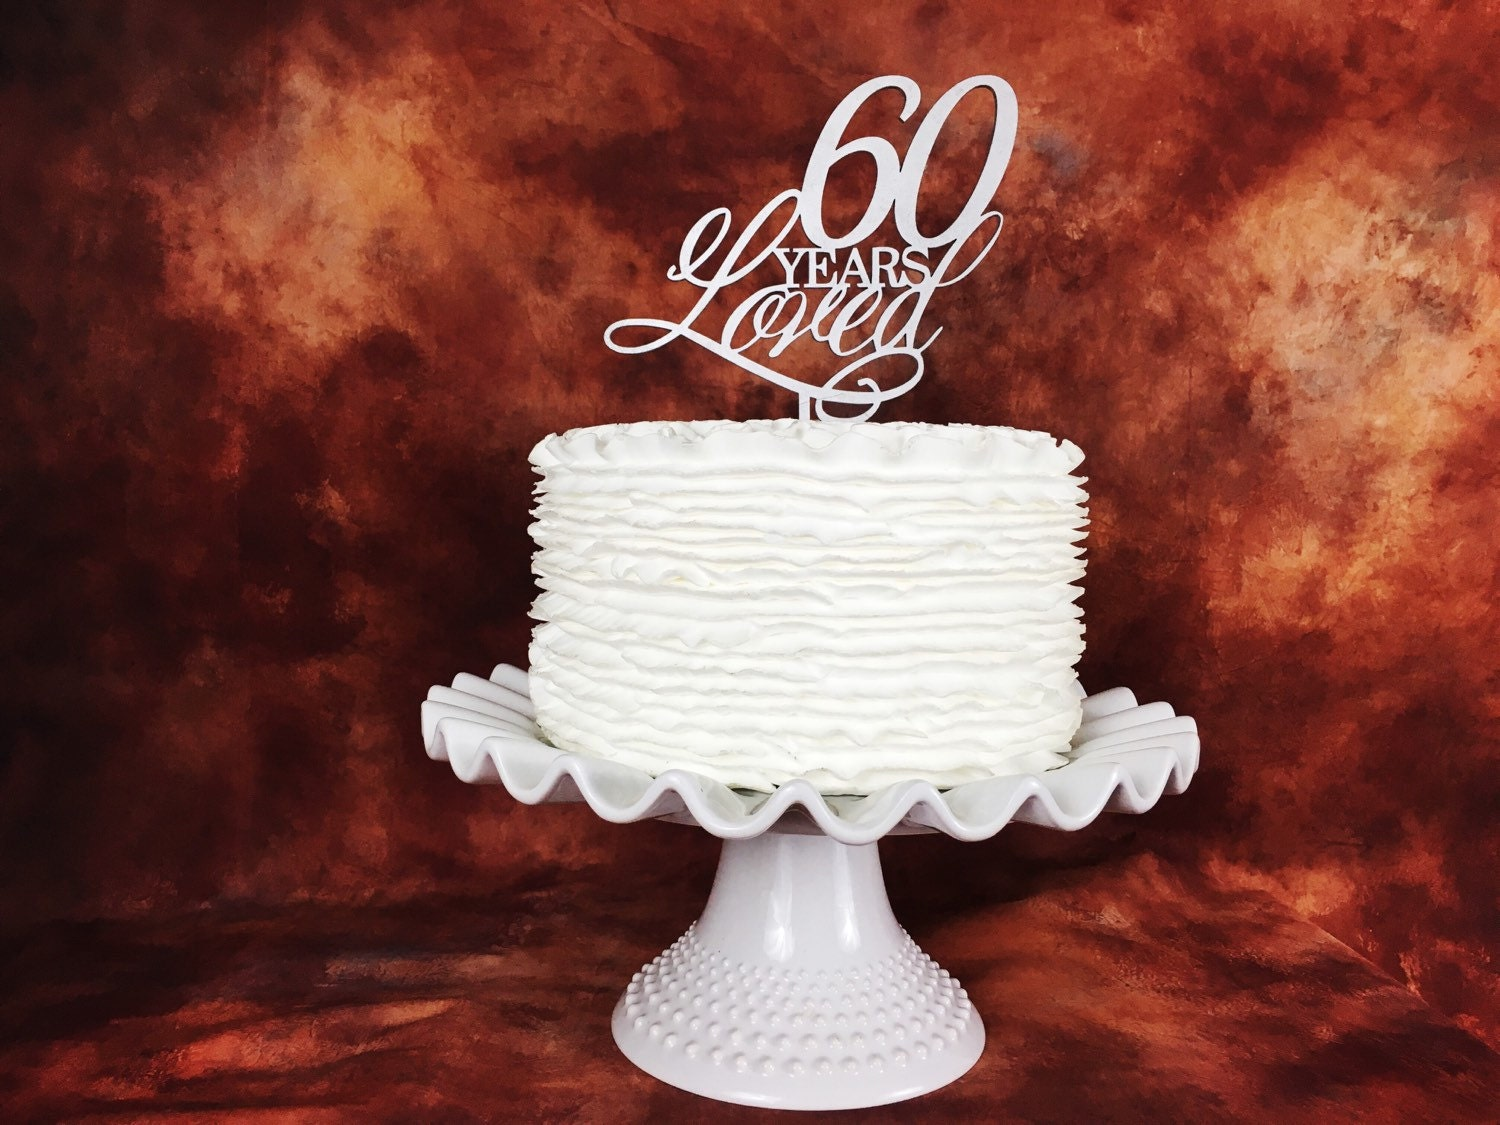 60th Birthday Cake 60 Years Loved Topper Anniversary Gold Silver Glitter